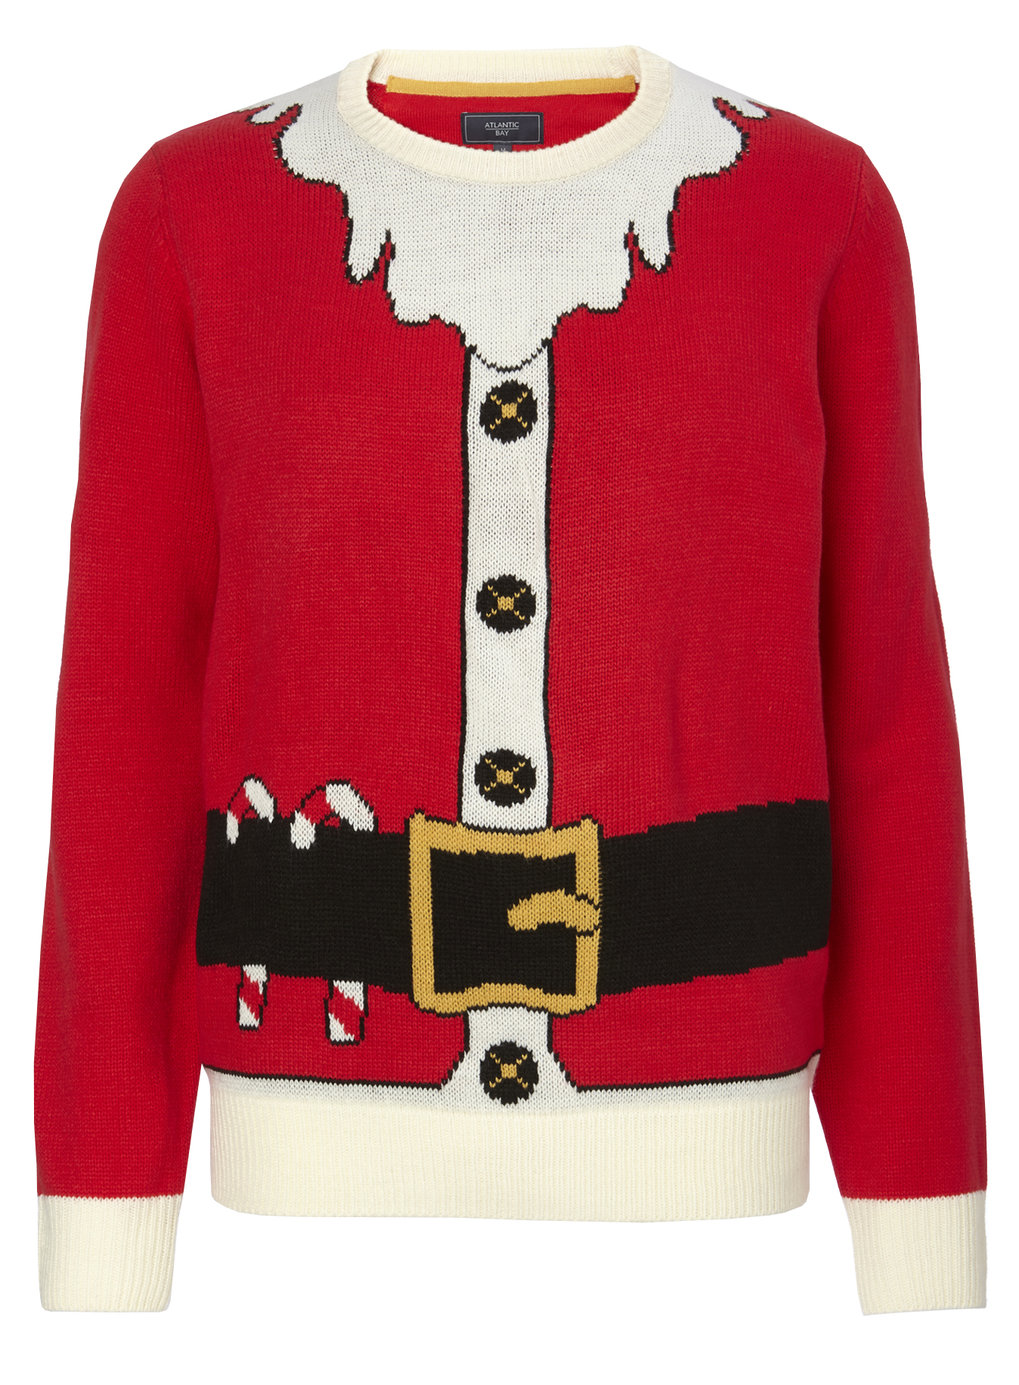 bhs sale, bhs christmas, christmas jumper, christmas jumper sale, santa jumper, lovesales